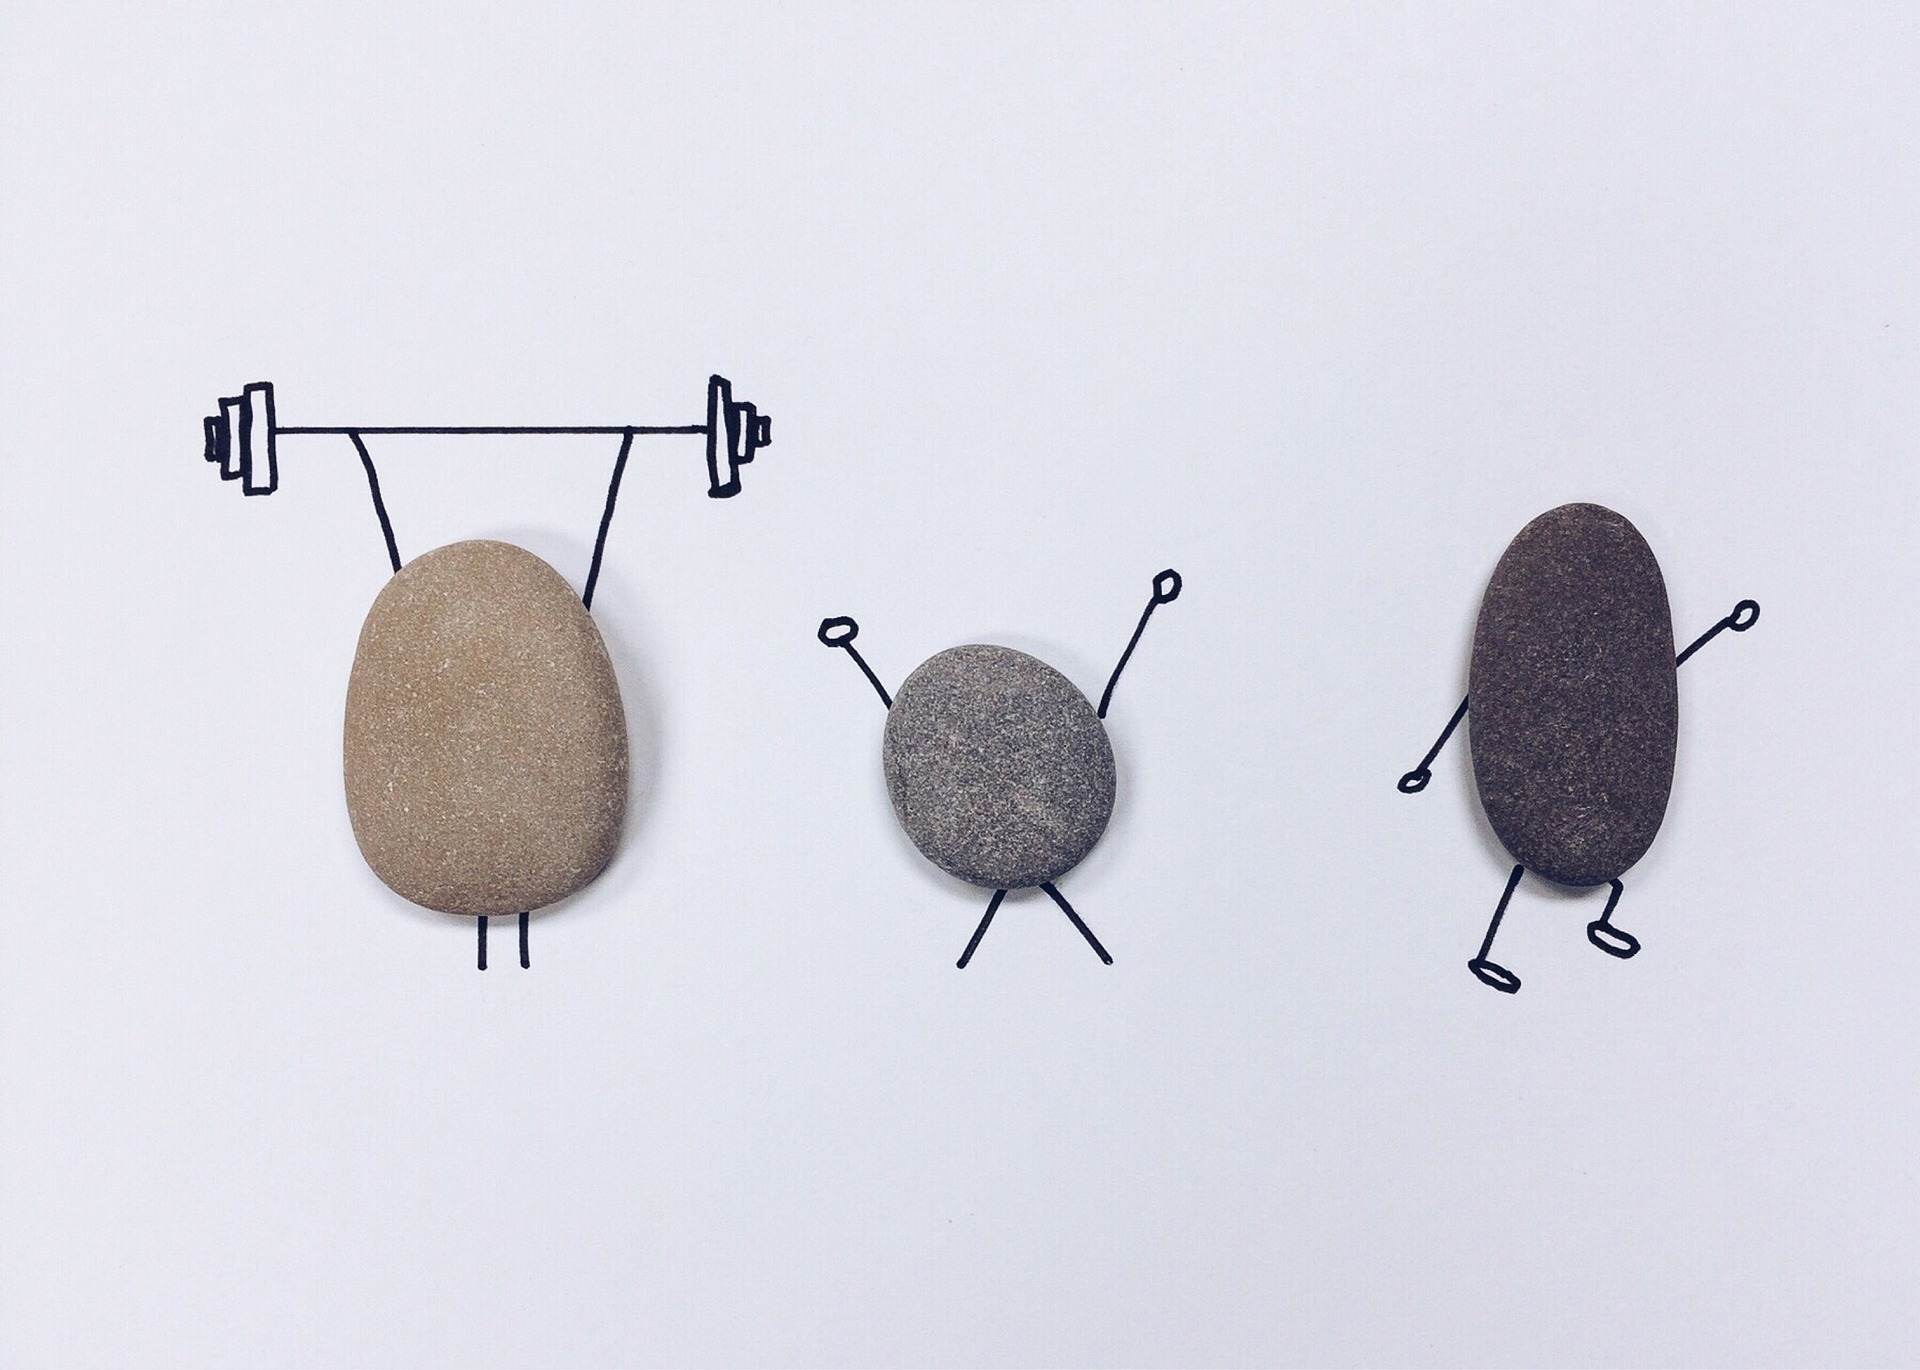 Rock craft showing activity options like walking and lifting weights